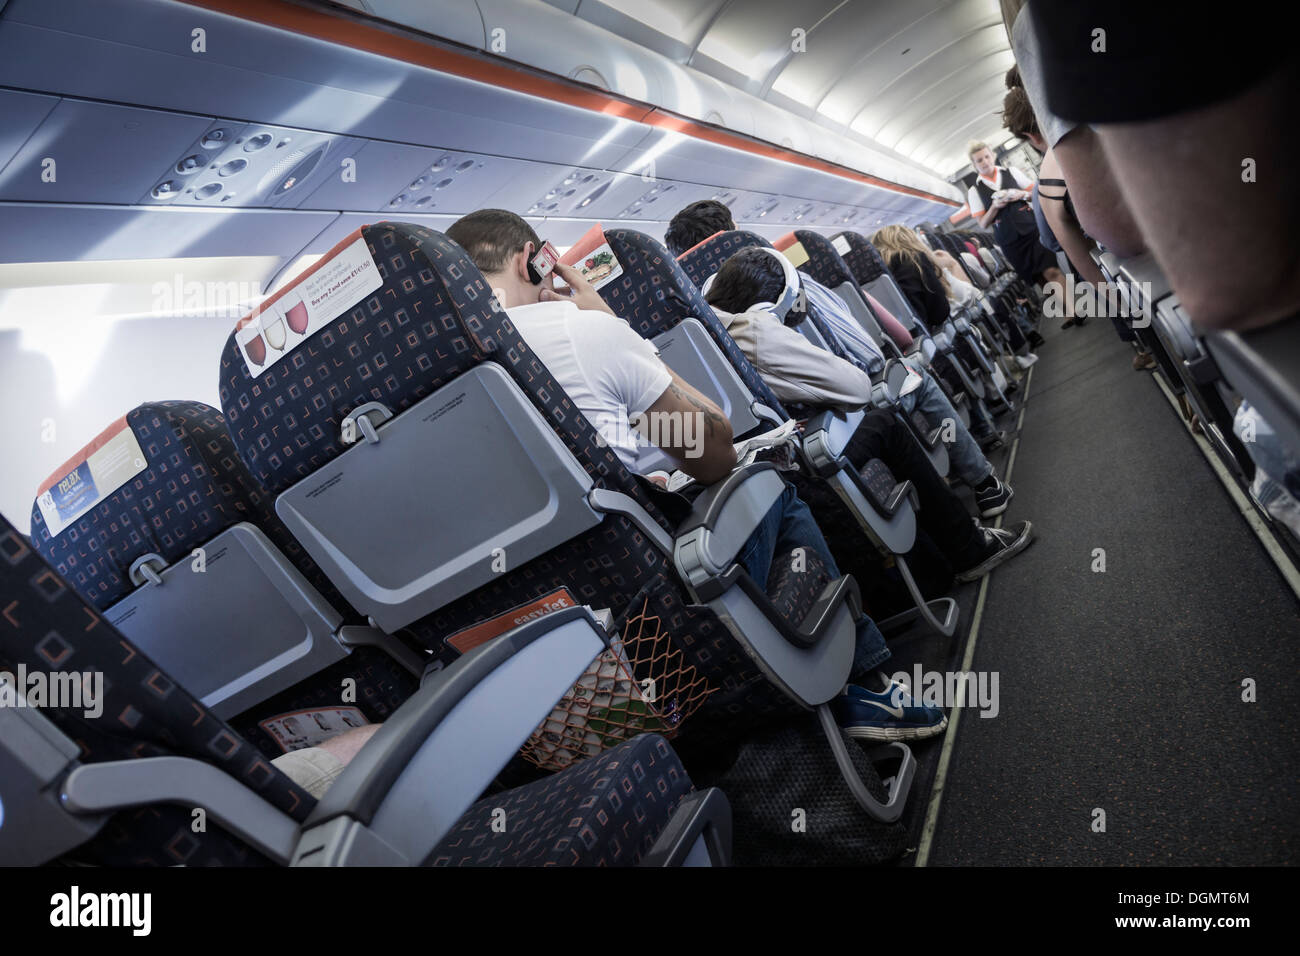 Onboard an EasyJet flight, bound for Spain, showing the flight attendant walking the aisle. - Stock Image